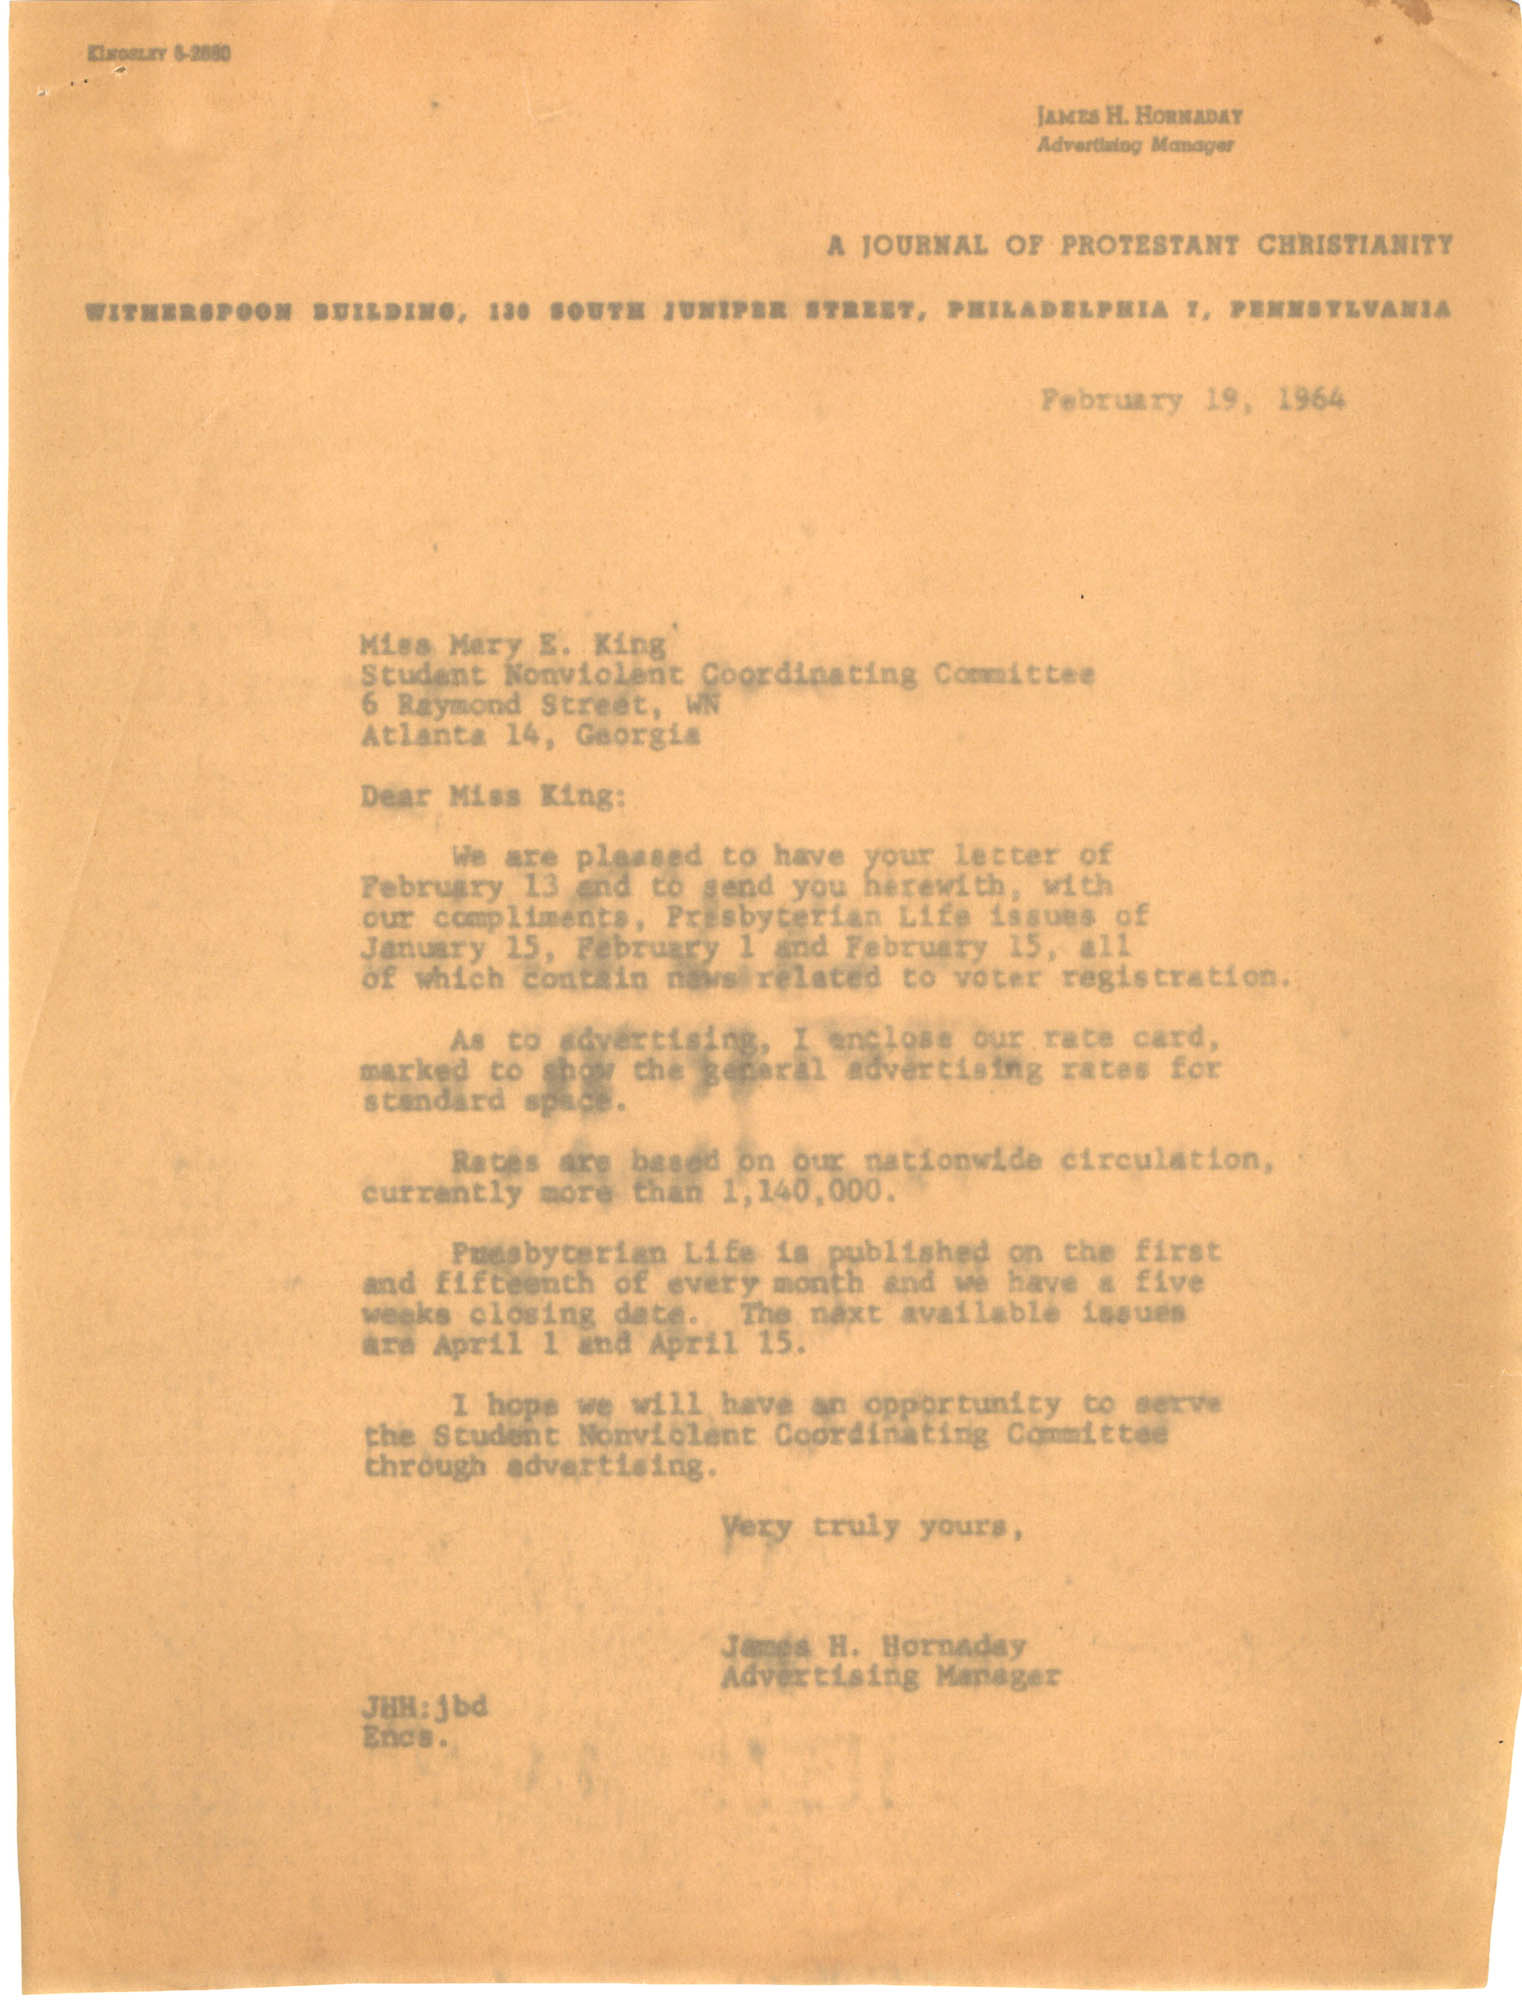 Letter from James Hornaday to Mary E. King, February 19, 1964